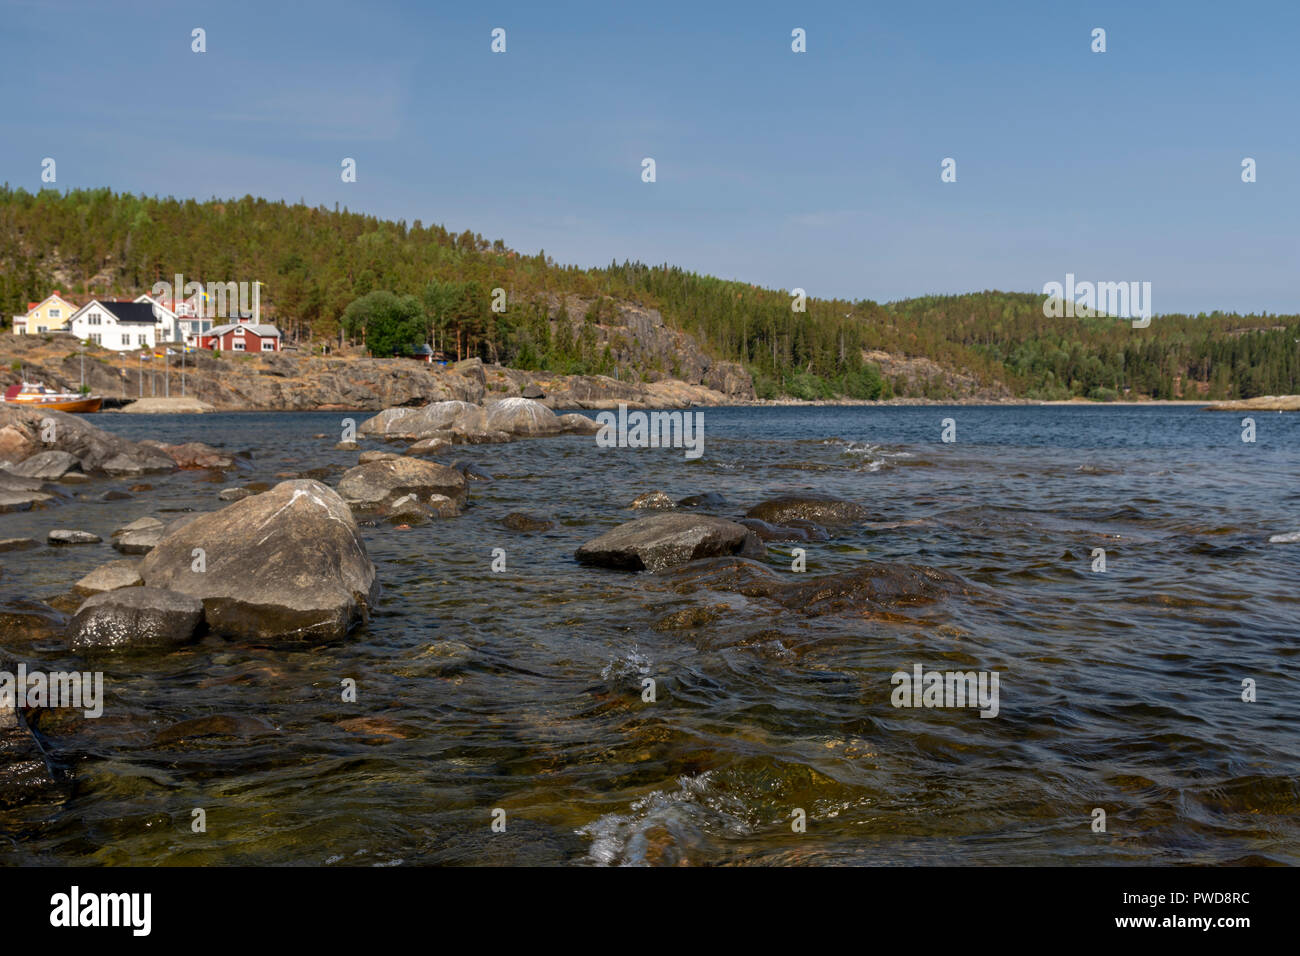 Waves and rocks in seashore in foreground and mountain with forest in background, picture from High Coast Area in Northern Sweden. - Stock Image